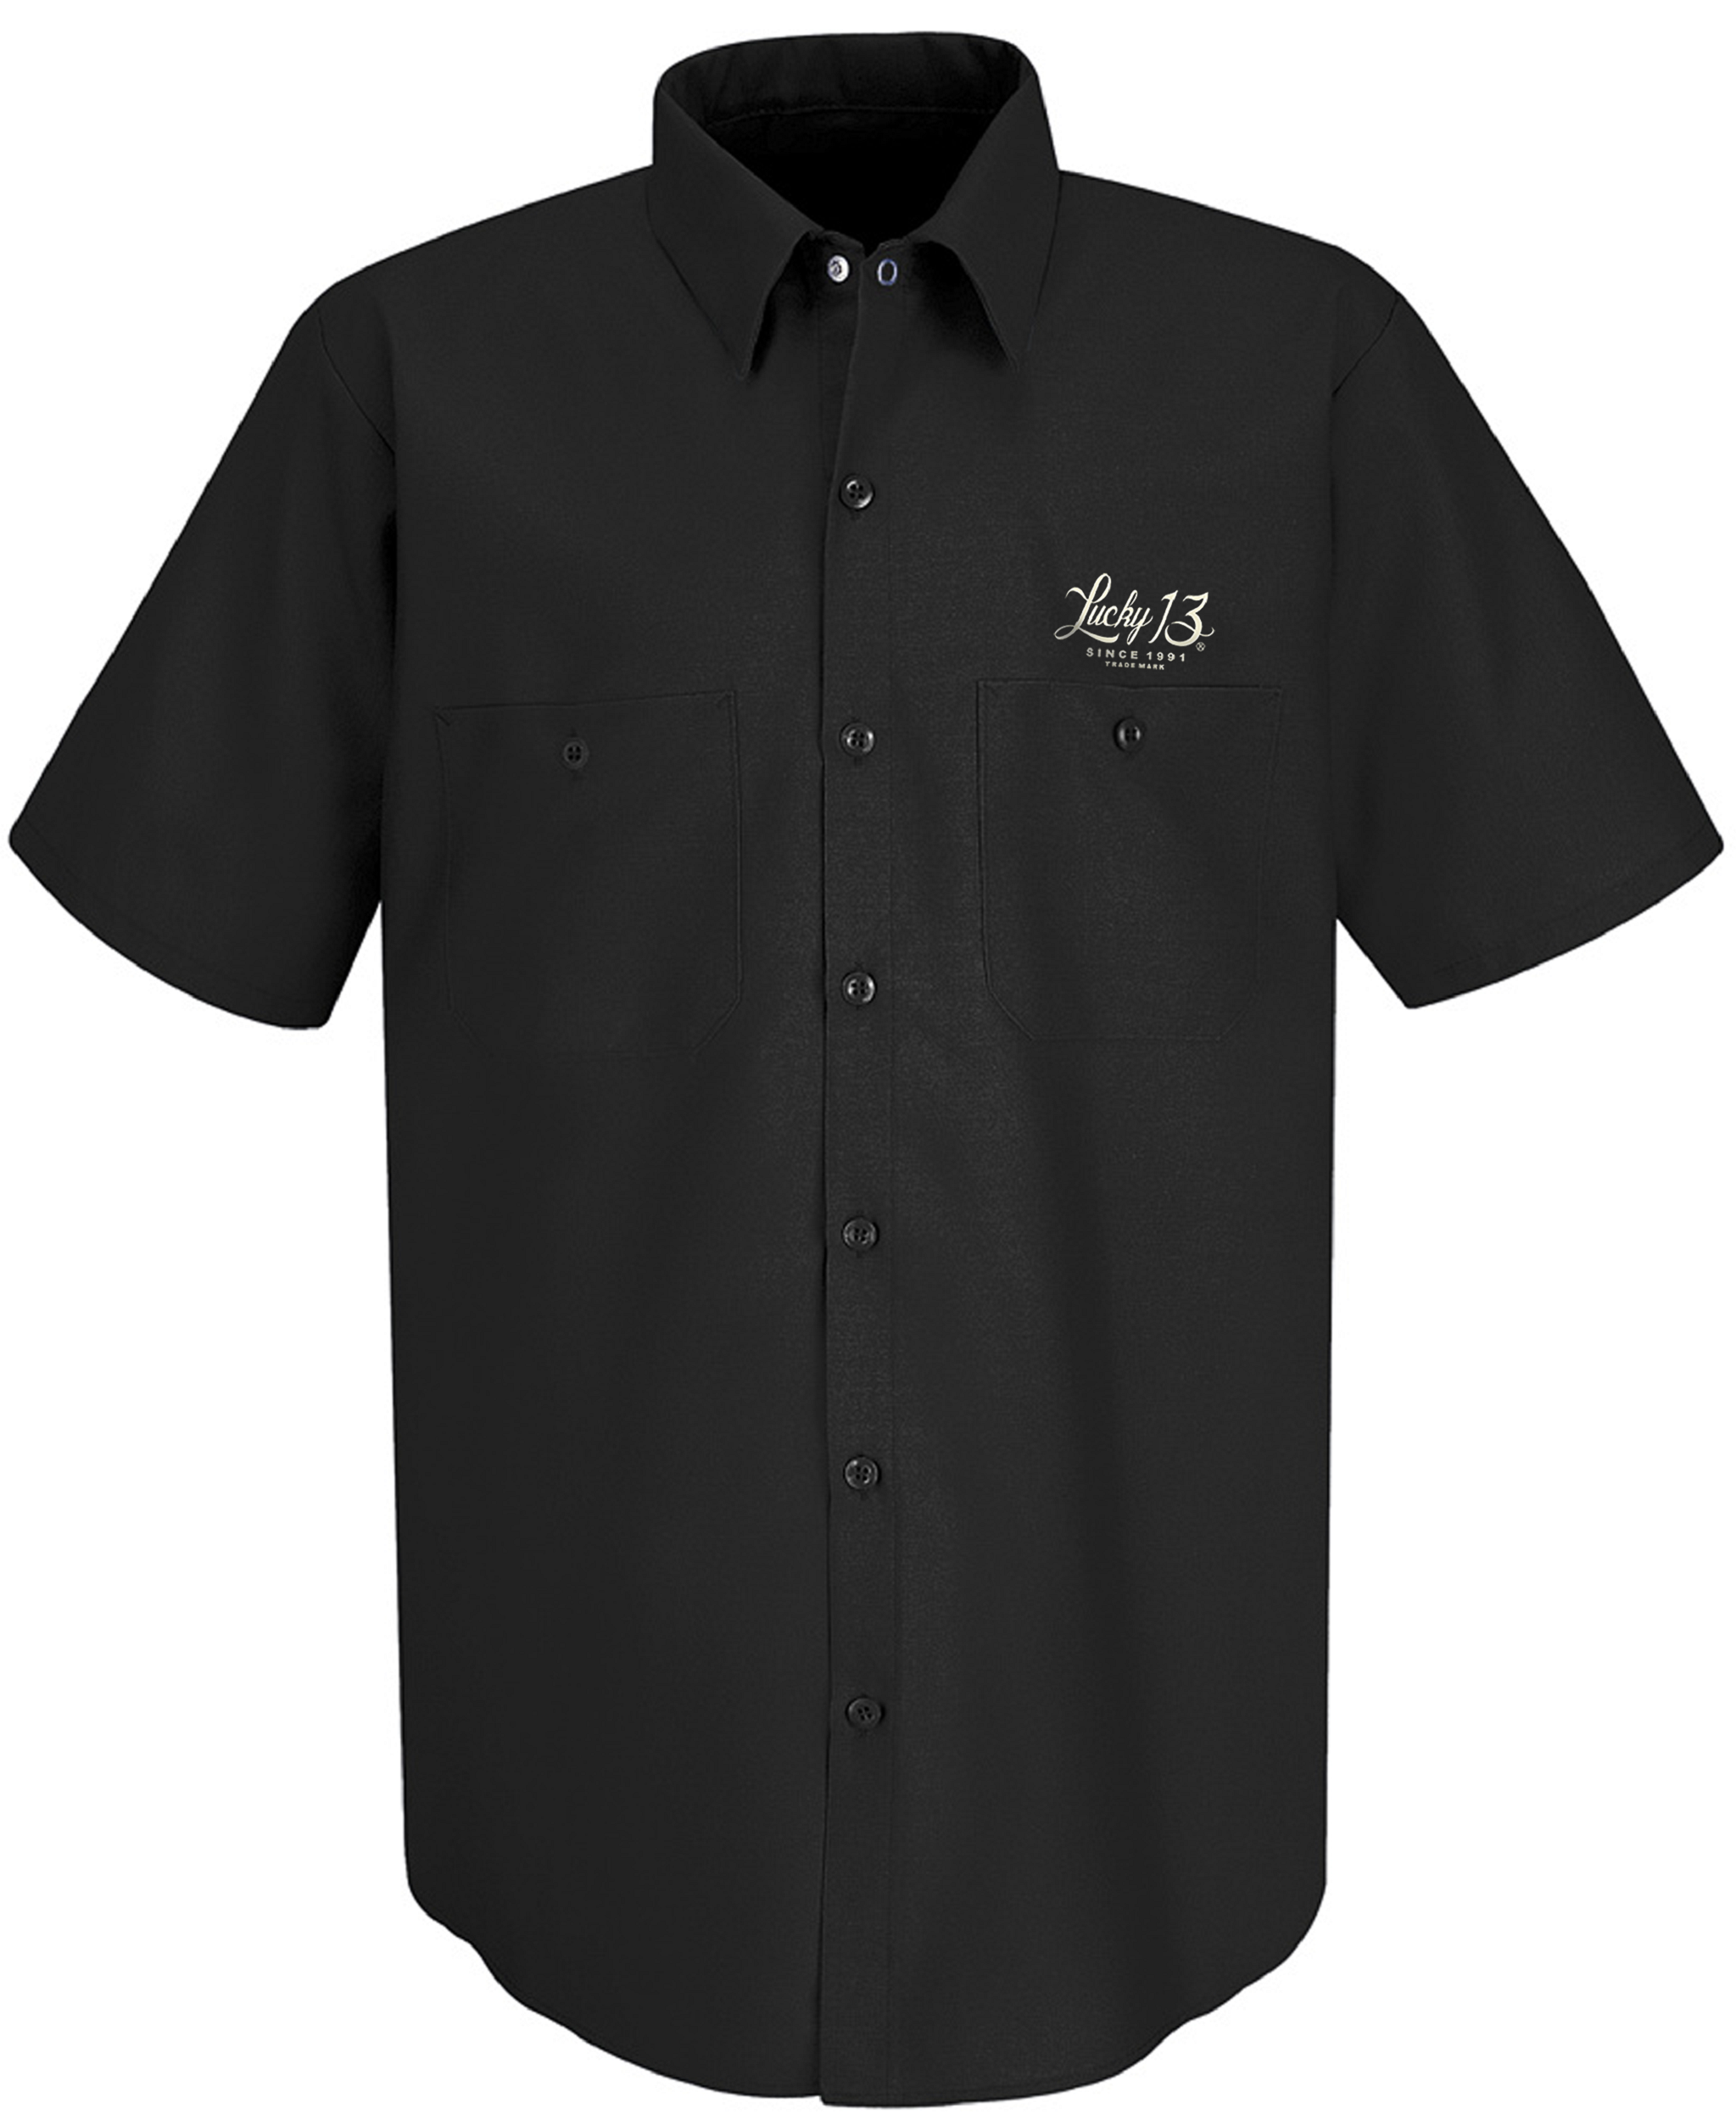 The COE CUSTOM Work Shirt